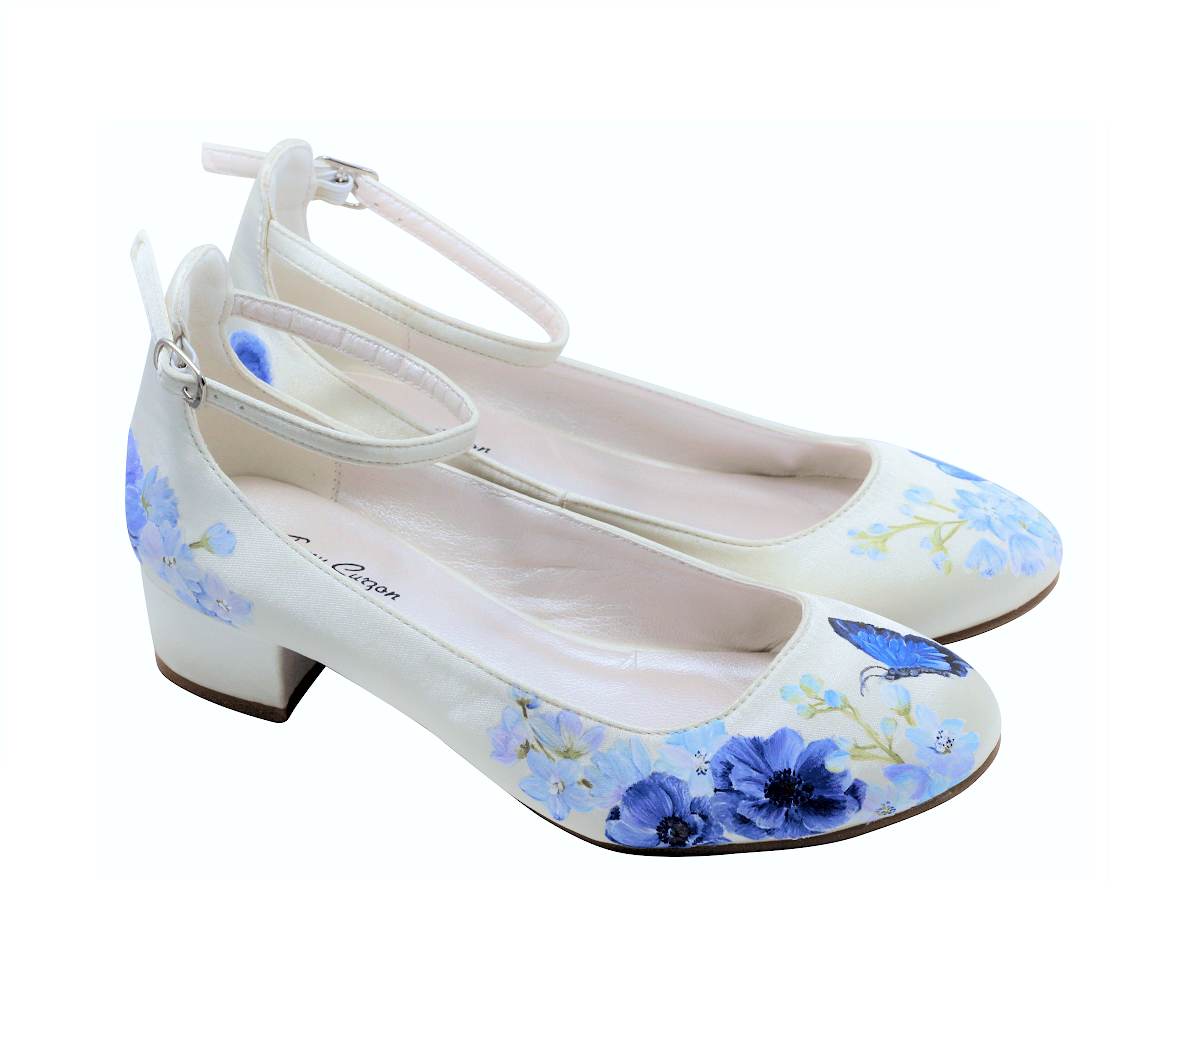 Block heel ovory satin flats with wildflower and butterfly hand-painted print